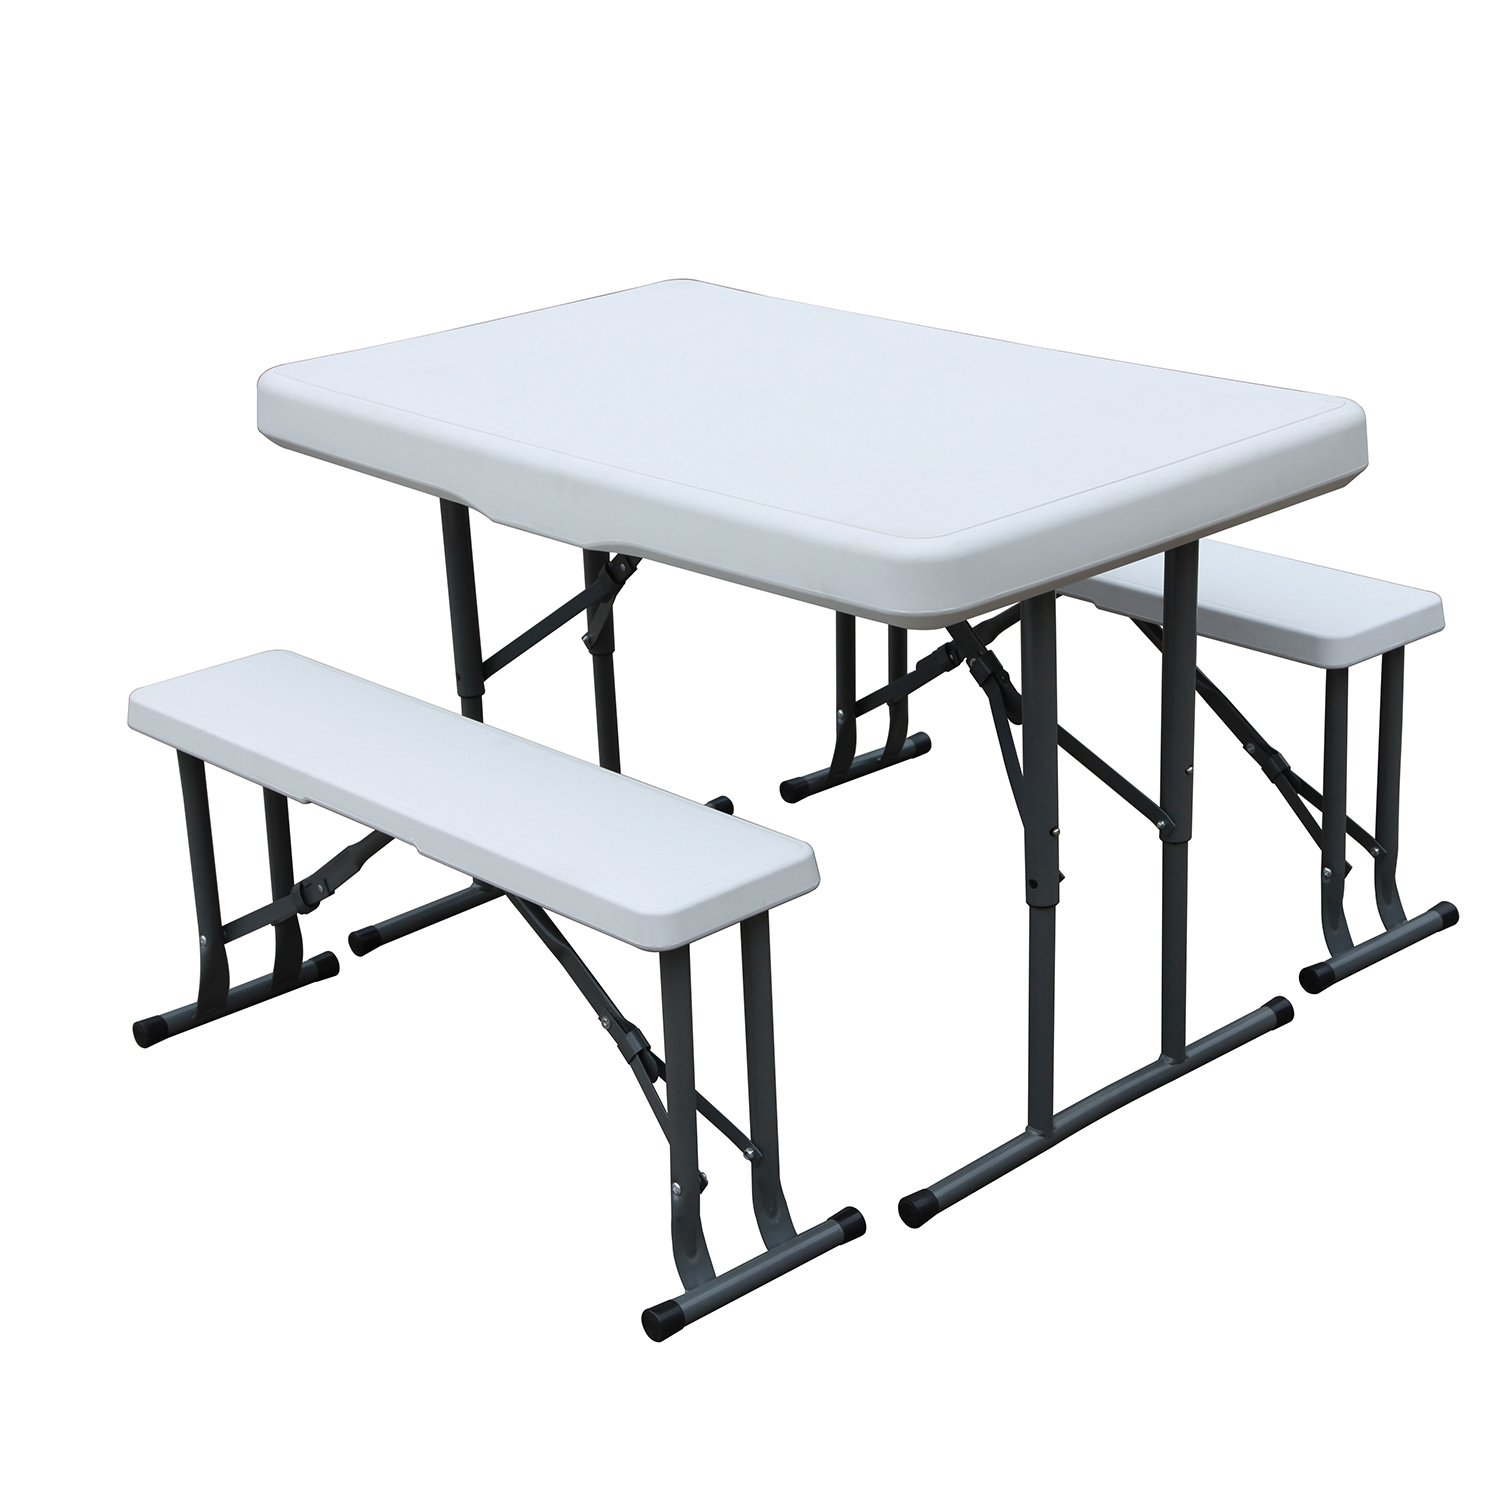 DlandHome Camping Folding Table BBQ Portable Desk Outdoor Dinner Table Utility Table and Bench Set DCAHL-HL-B105